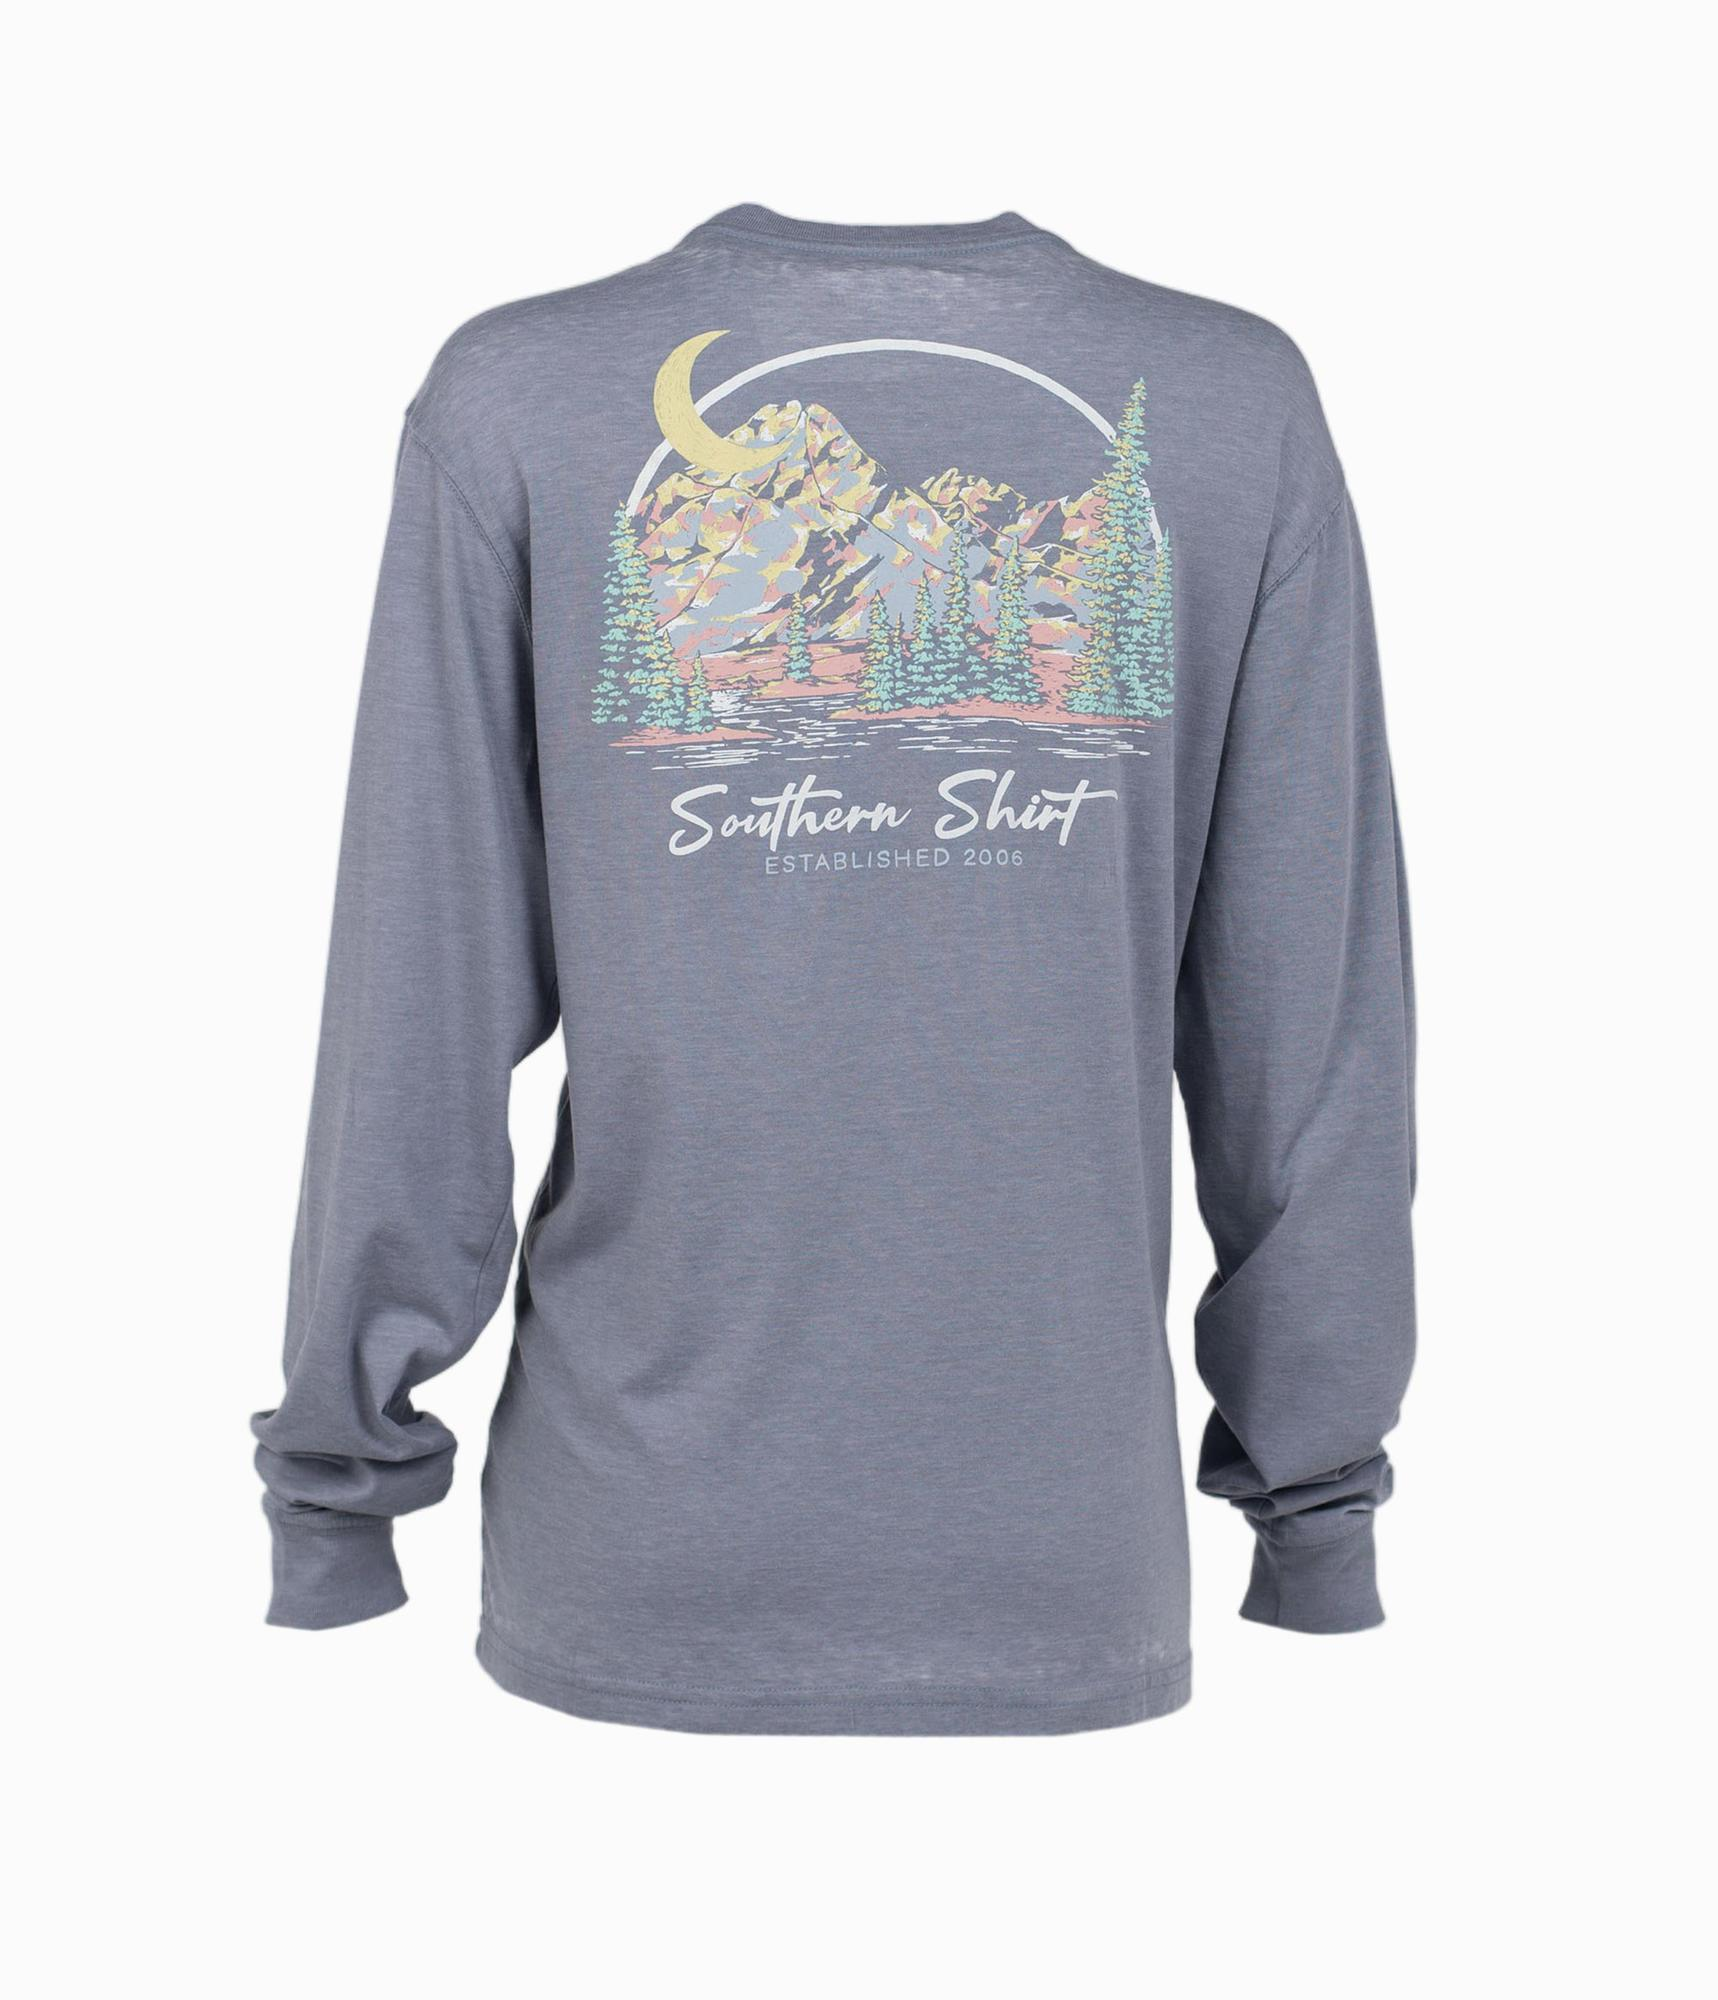 SOUTHERN SHIRT CO. Women's Tees Southern Shirt Enjoy The View LS Tee || David's Clothing